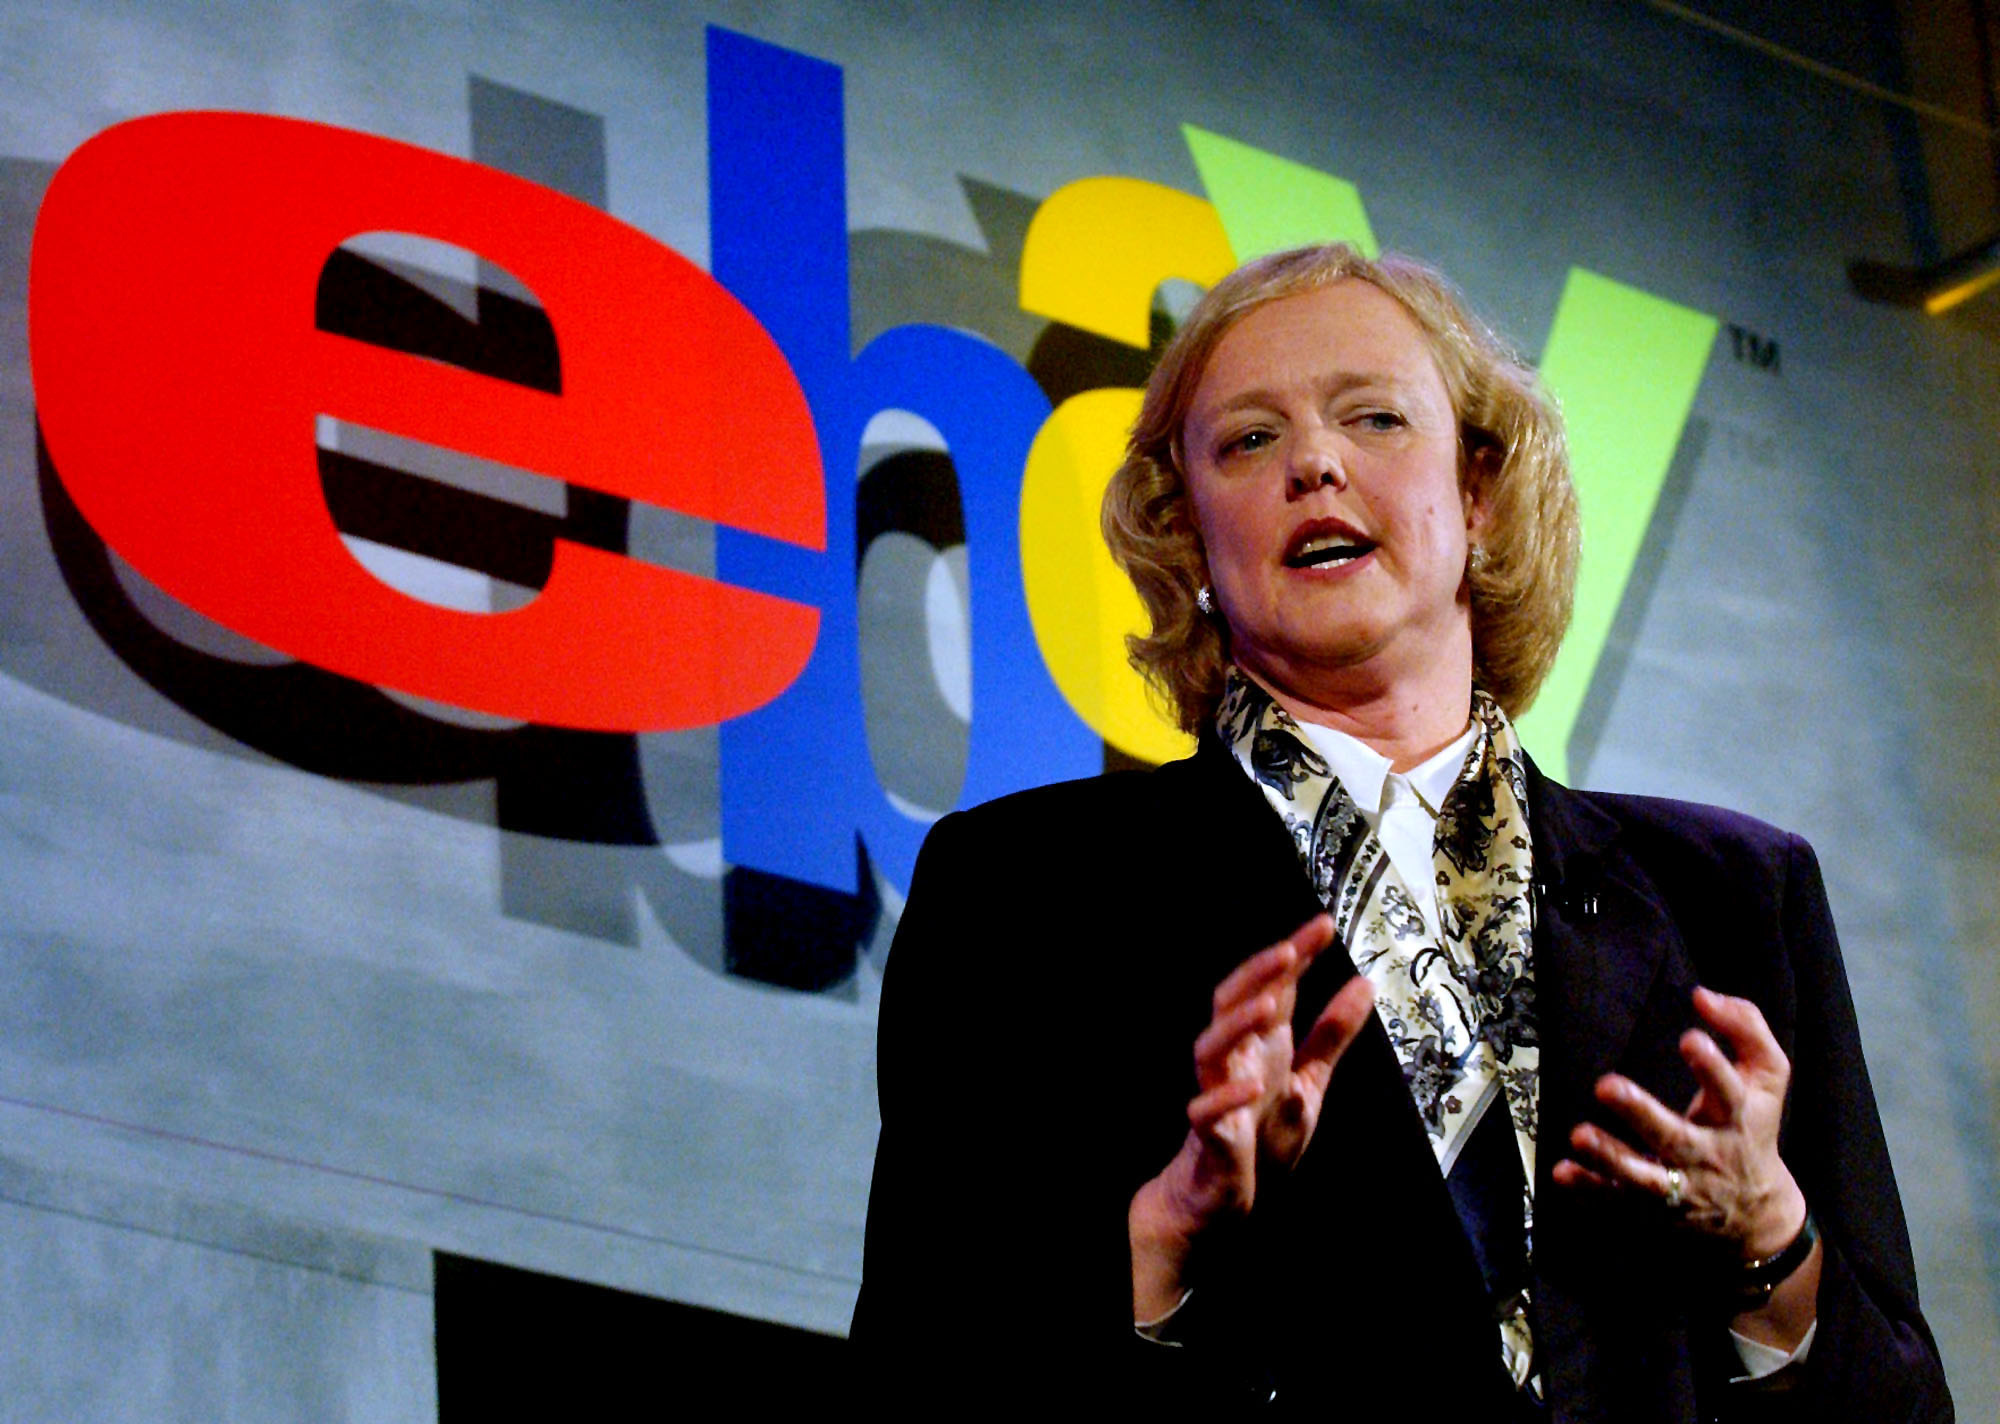 meg whitman at ebay Meg whitman shares her stories of hp, ebay and the aftermath of a failed run for california governor.